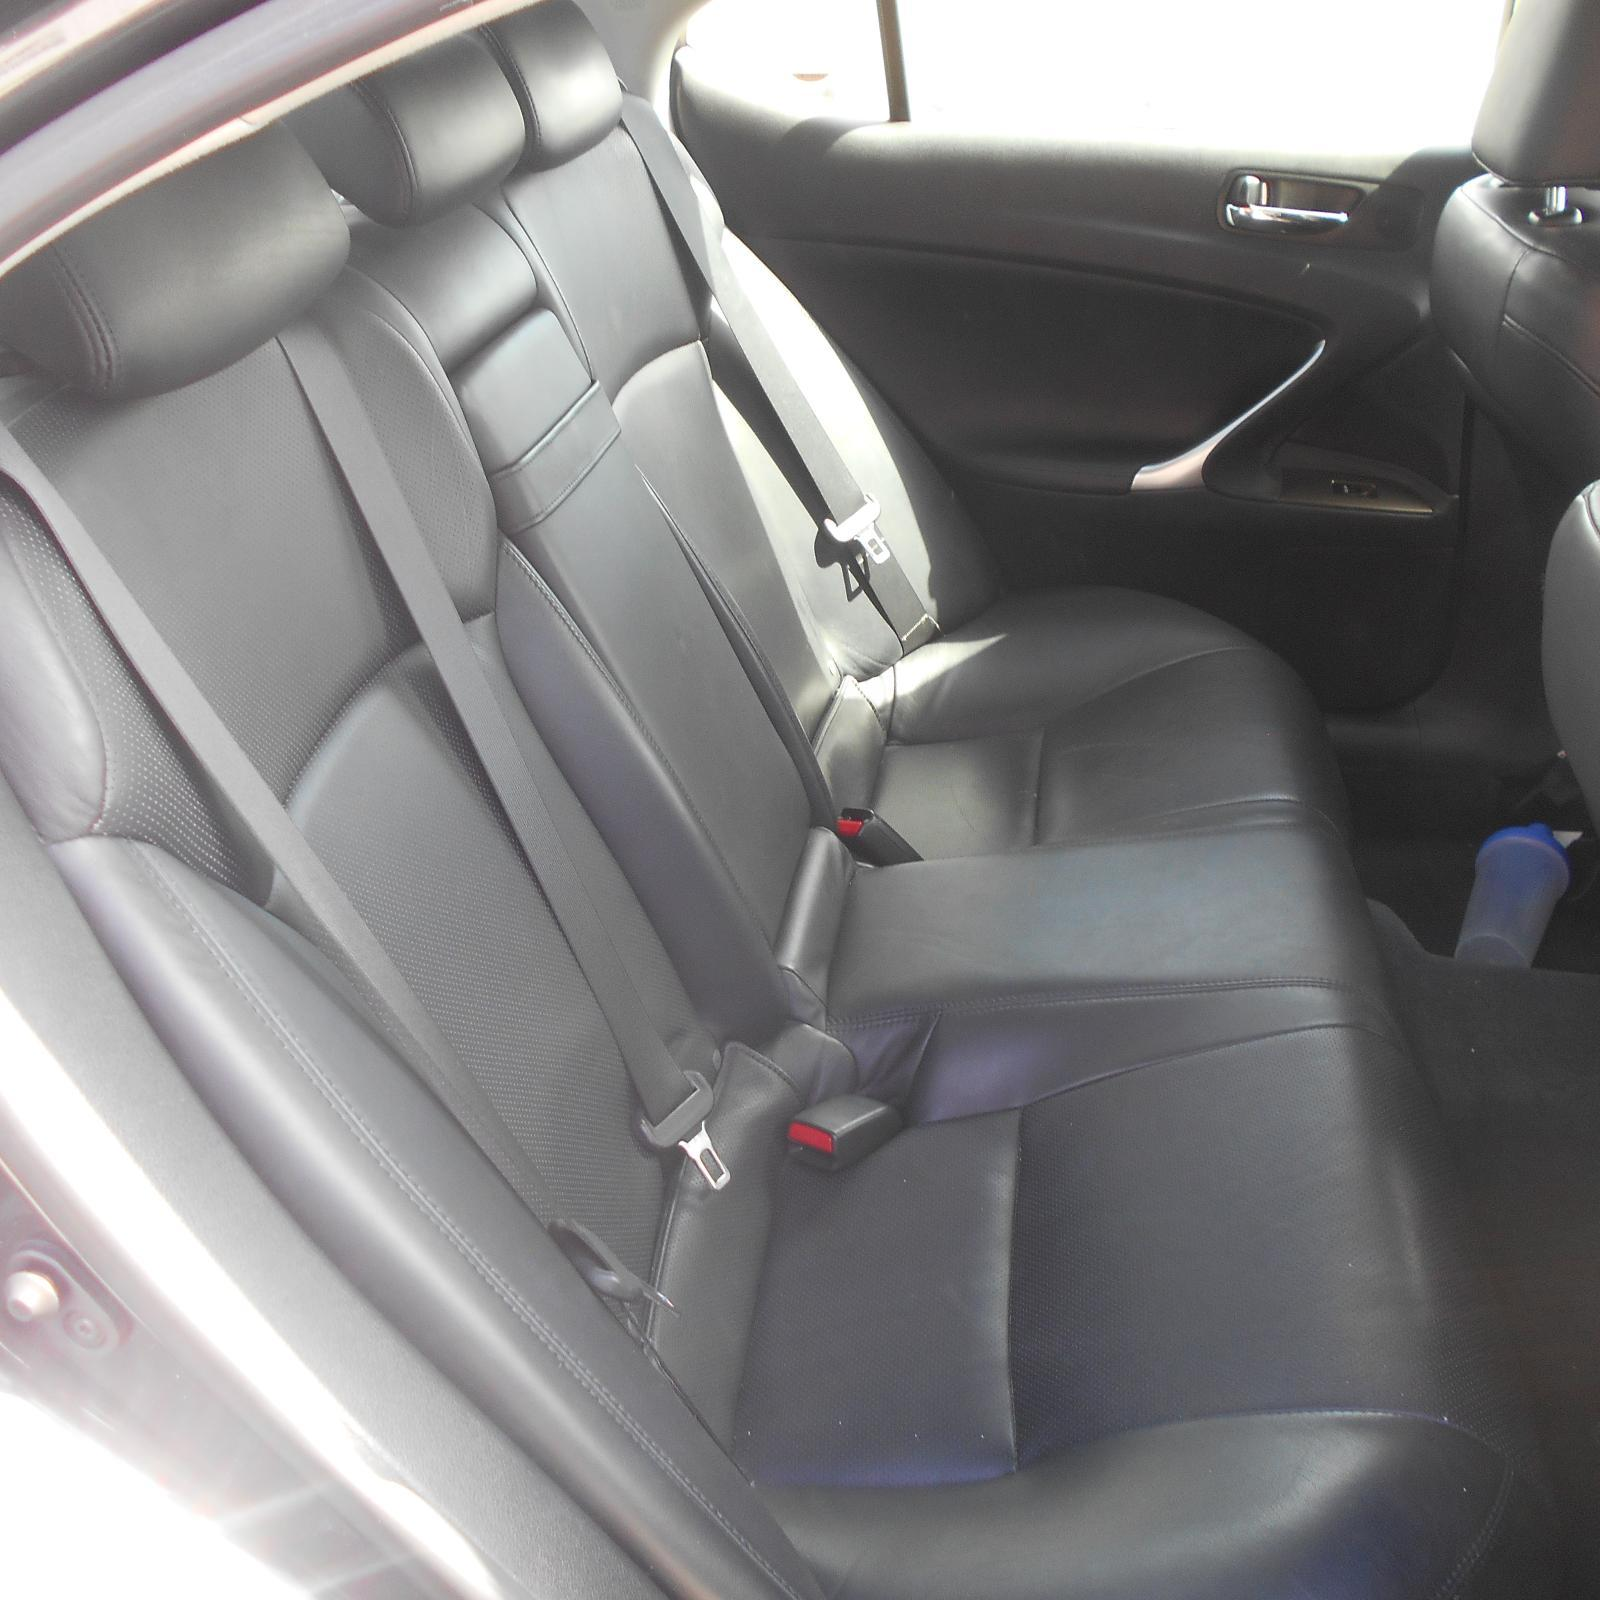 LEXUS IS250/IS250C, 2nd Seat (Rear Seat), GSE20R, IS250/IS350, LEATHER, 11/05-06/13